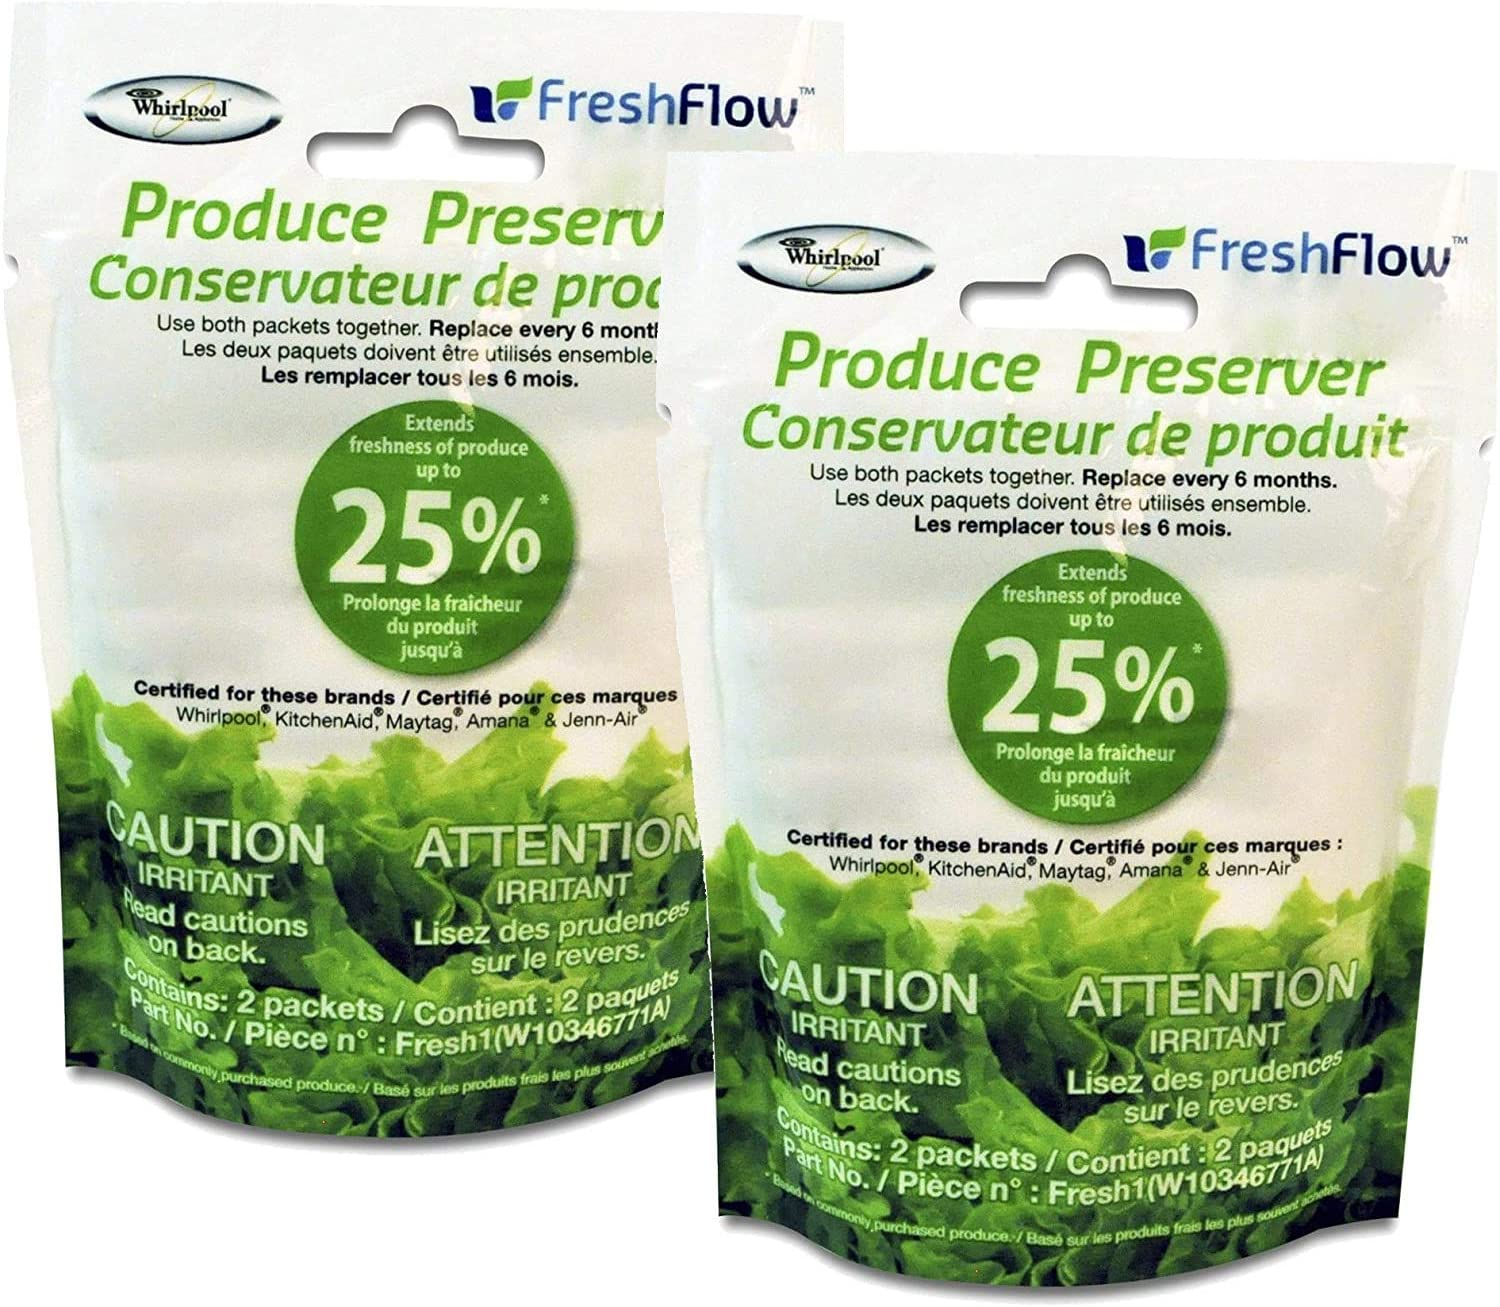 Fresh Flow W10346771A Produce Preserver Filter for Whirlpool Refrigerator's 2-Pack